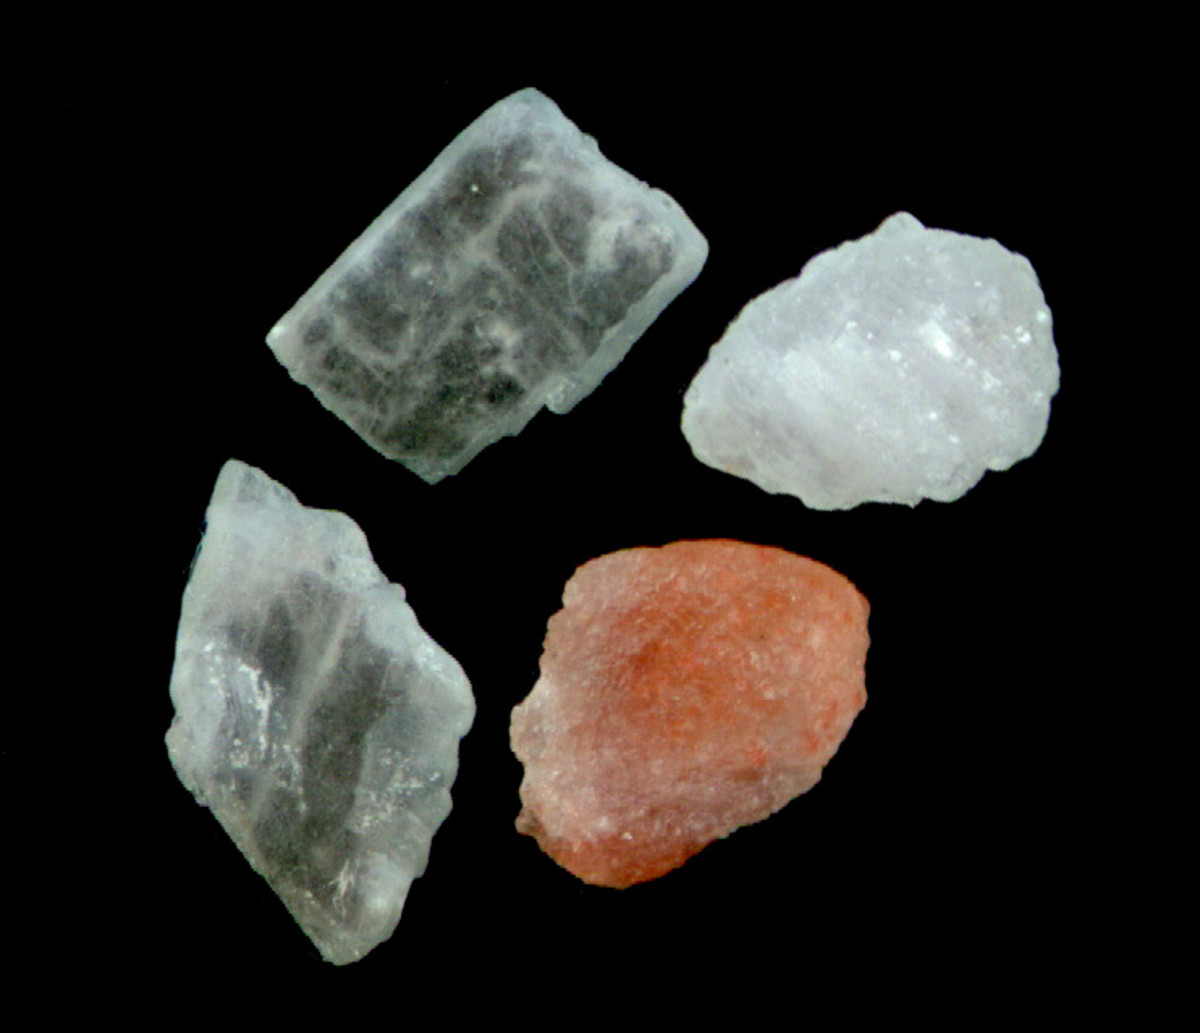 Health Benefits Of Himalayan Salt And Benefits Of Sole